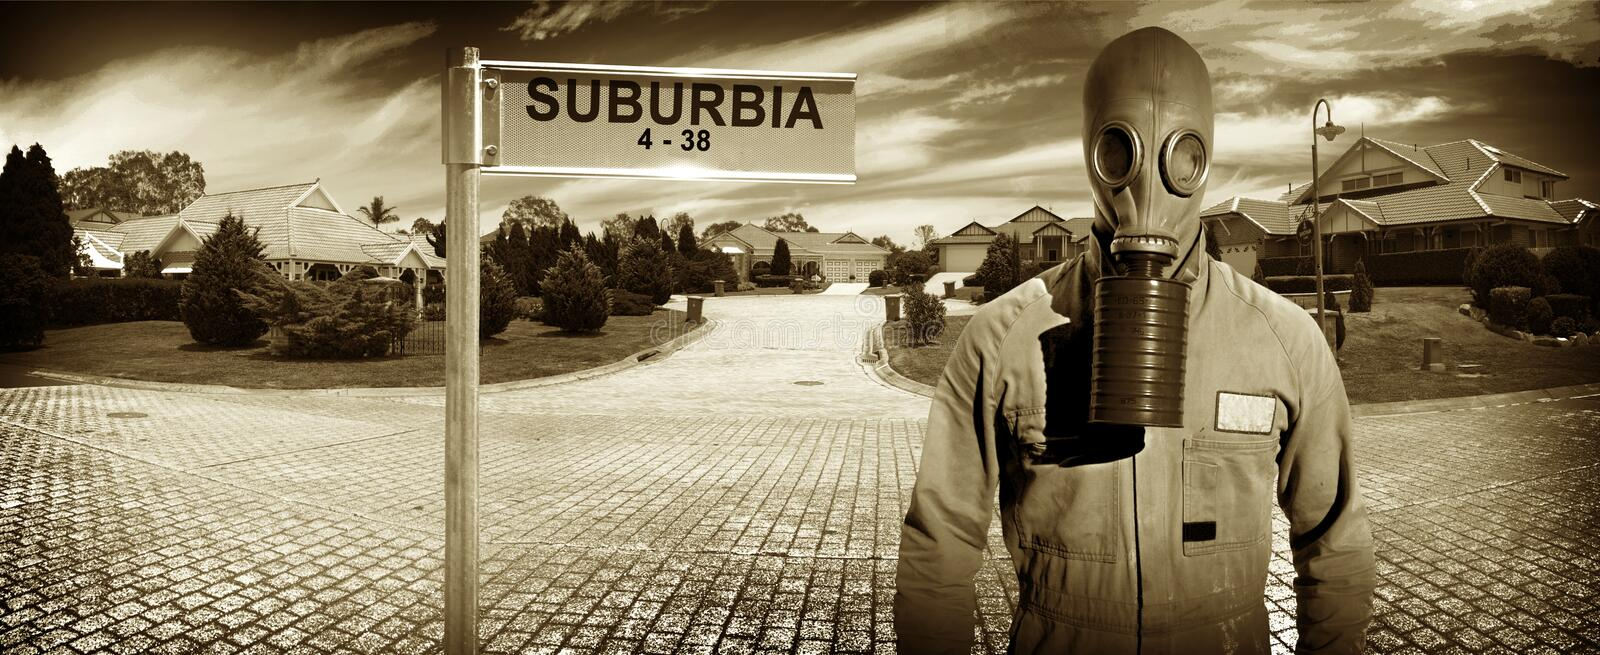 Download Another Day In Suburbia Royalty Free Stock Photos - Image: 14509428